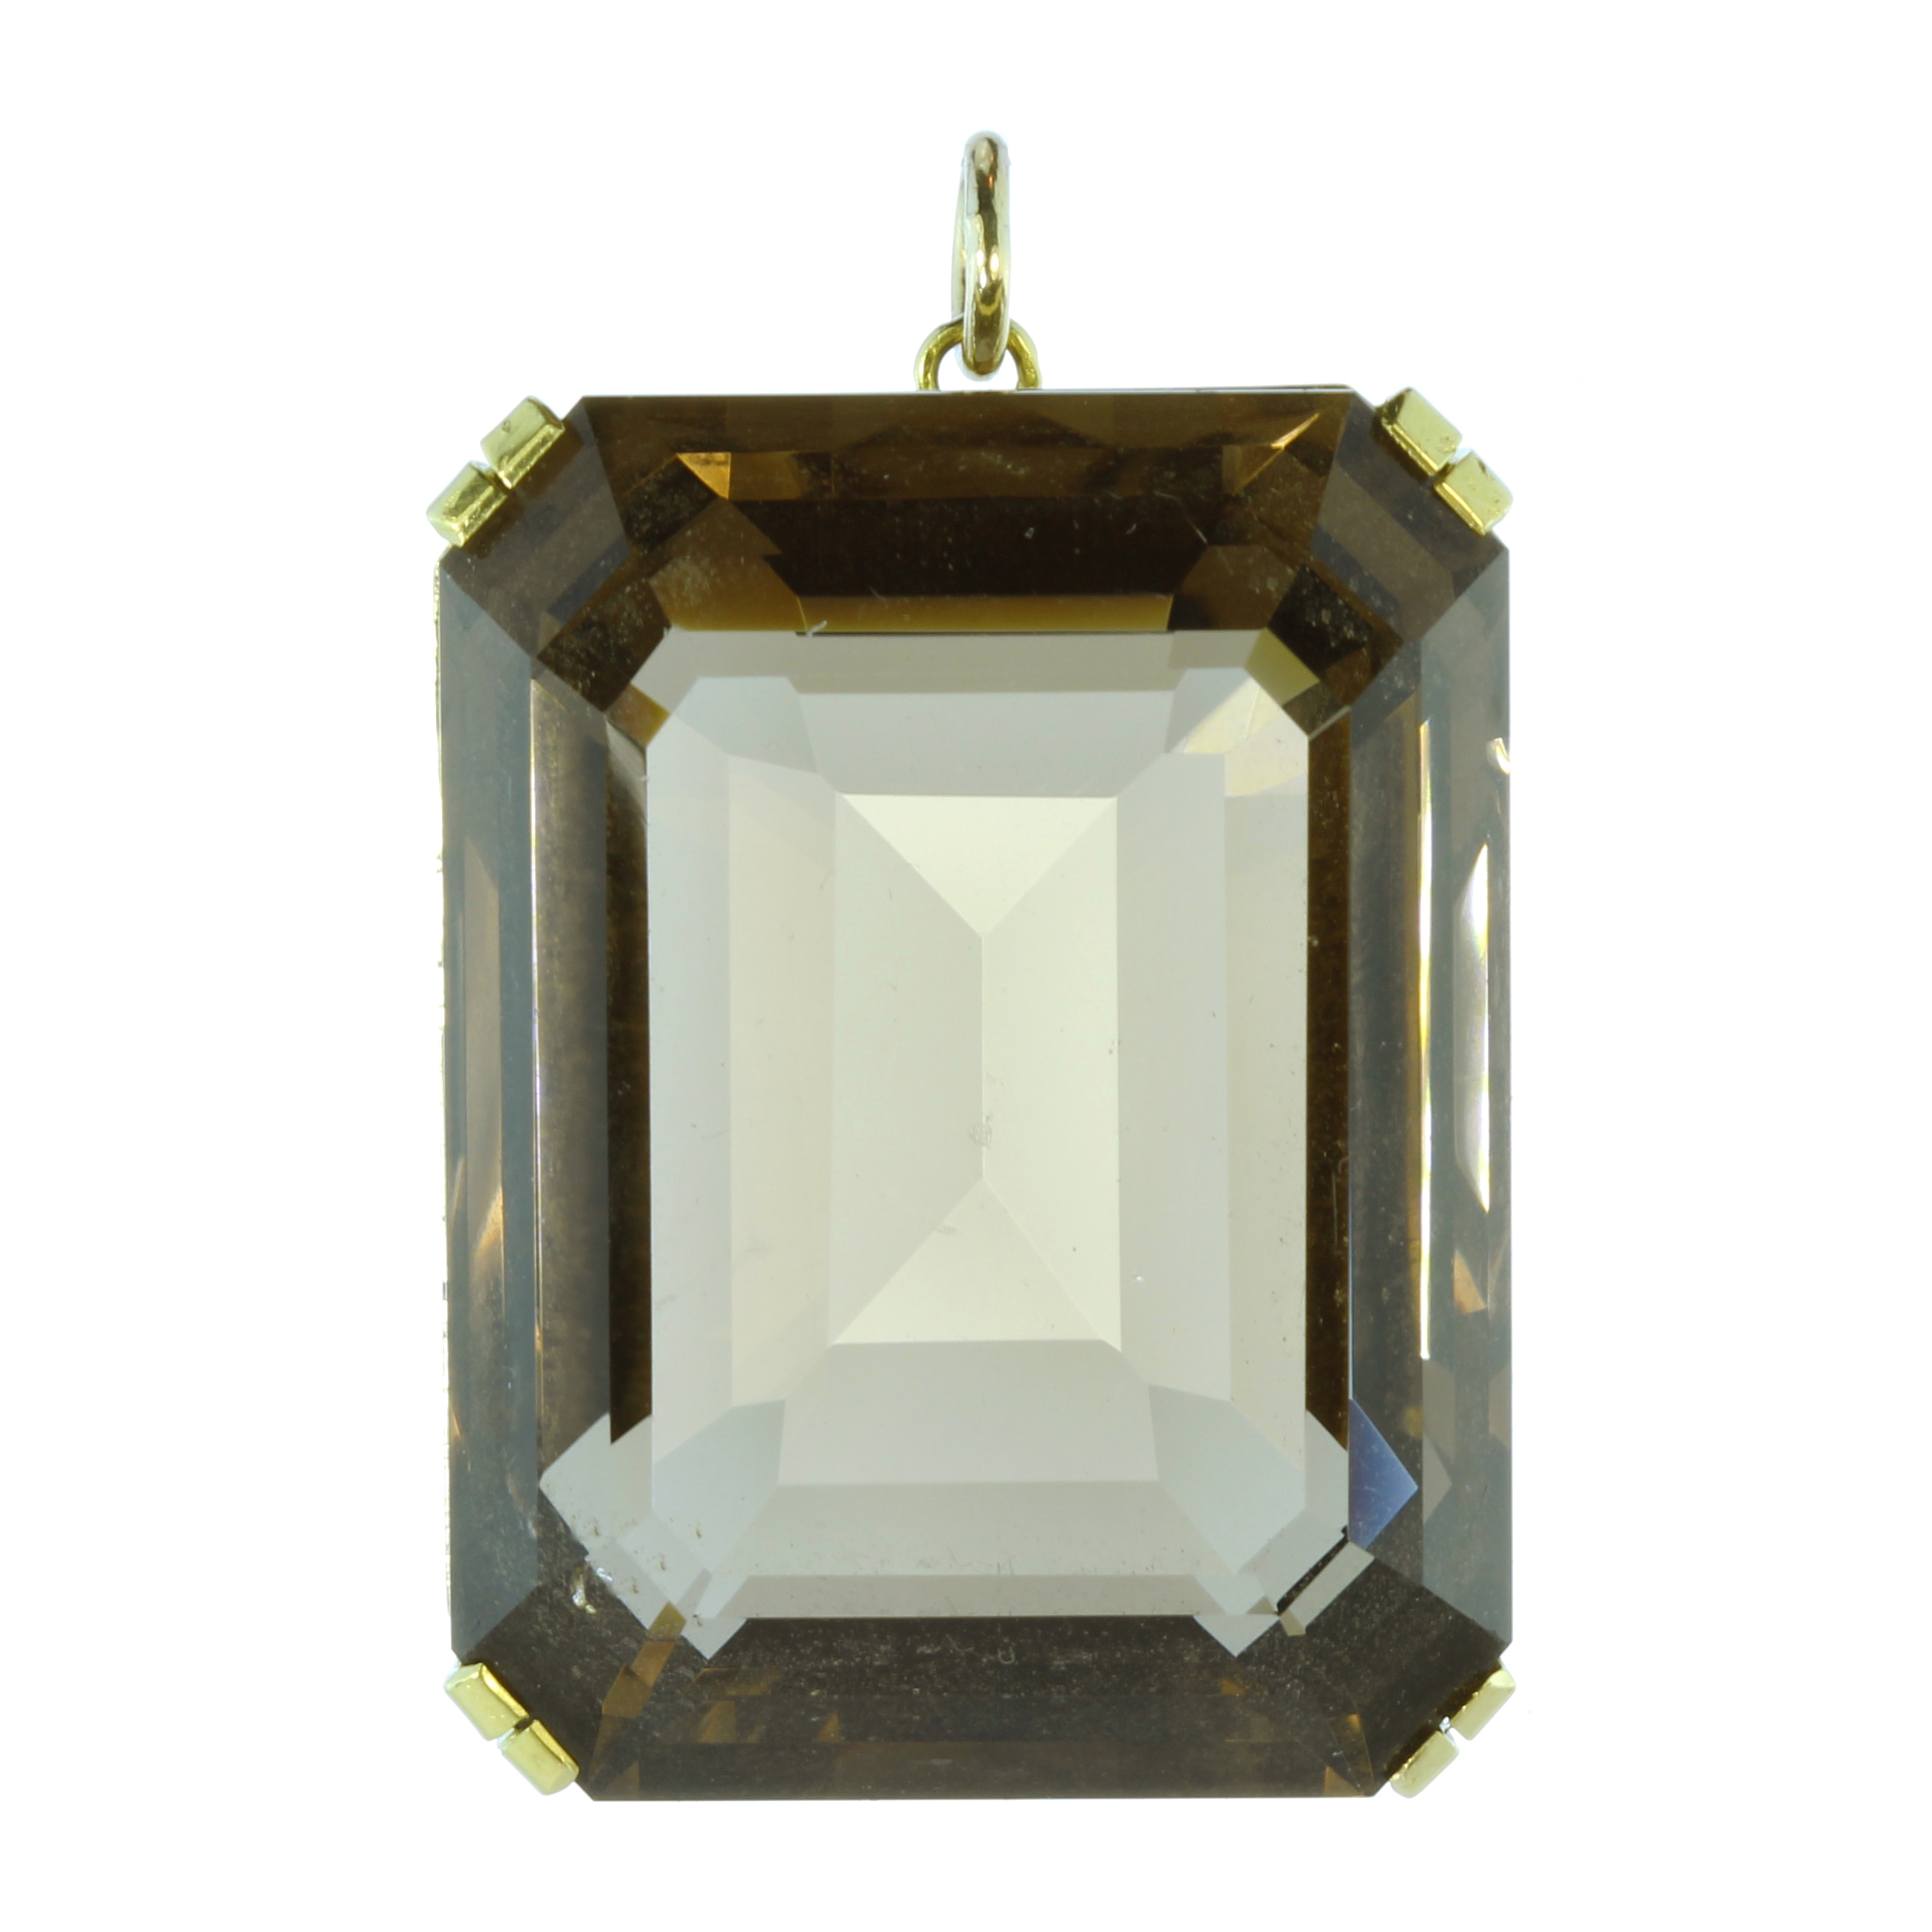 Los 13 - A large Vintage smoky quartz / cairngorm pendant in 18ct yellow gold set with a large modified